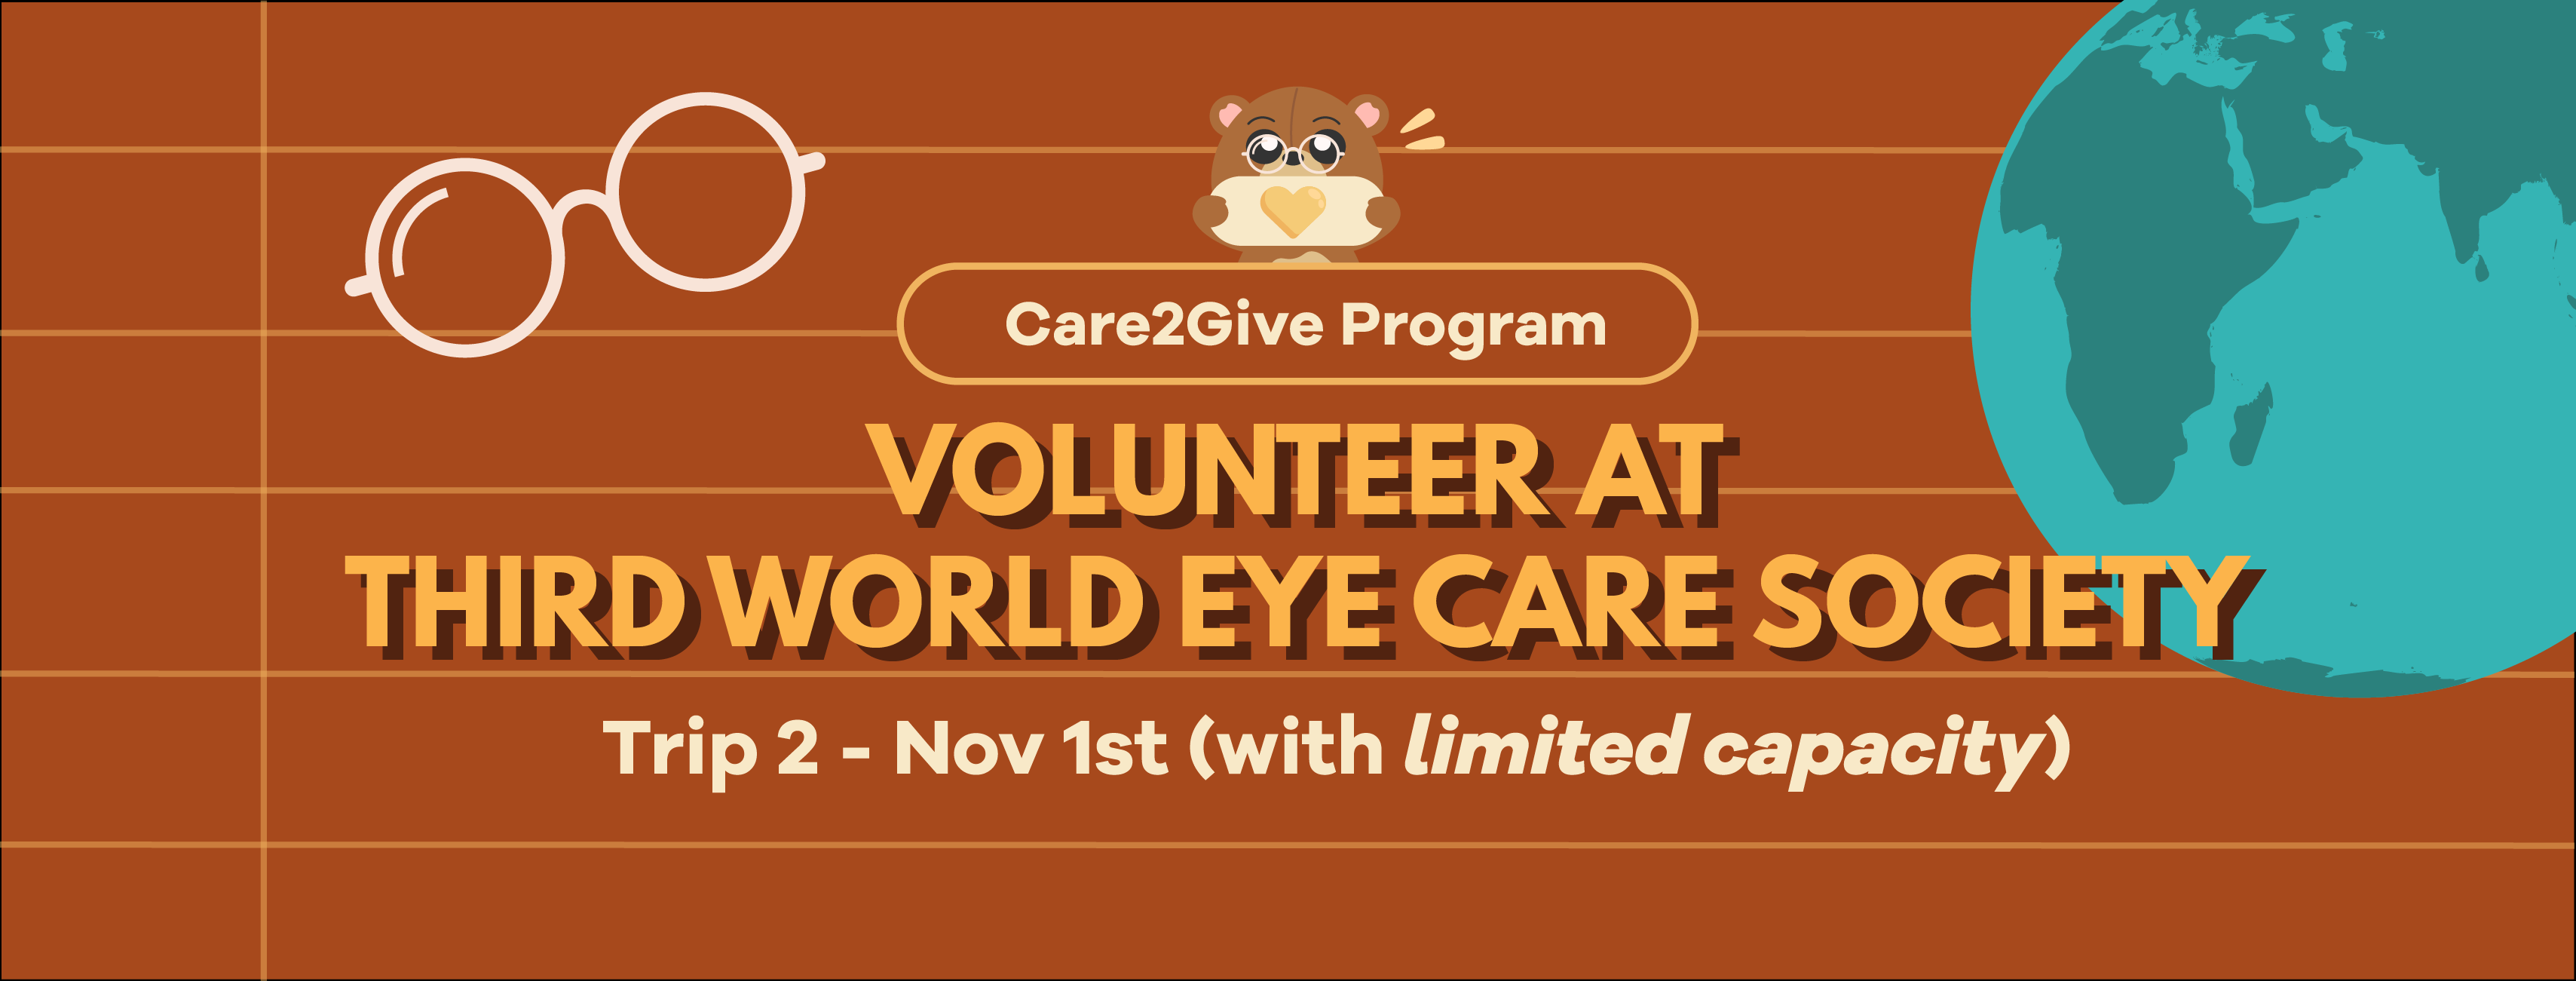 Care2Give @ TWECS: Volunteer with CCP! (Session 2)